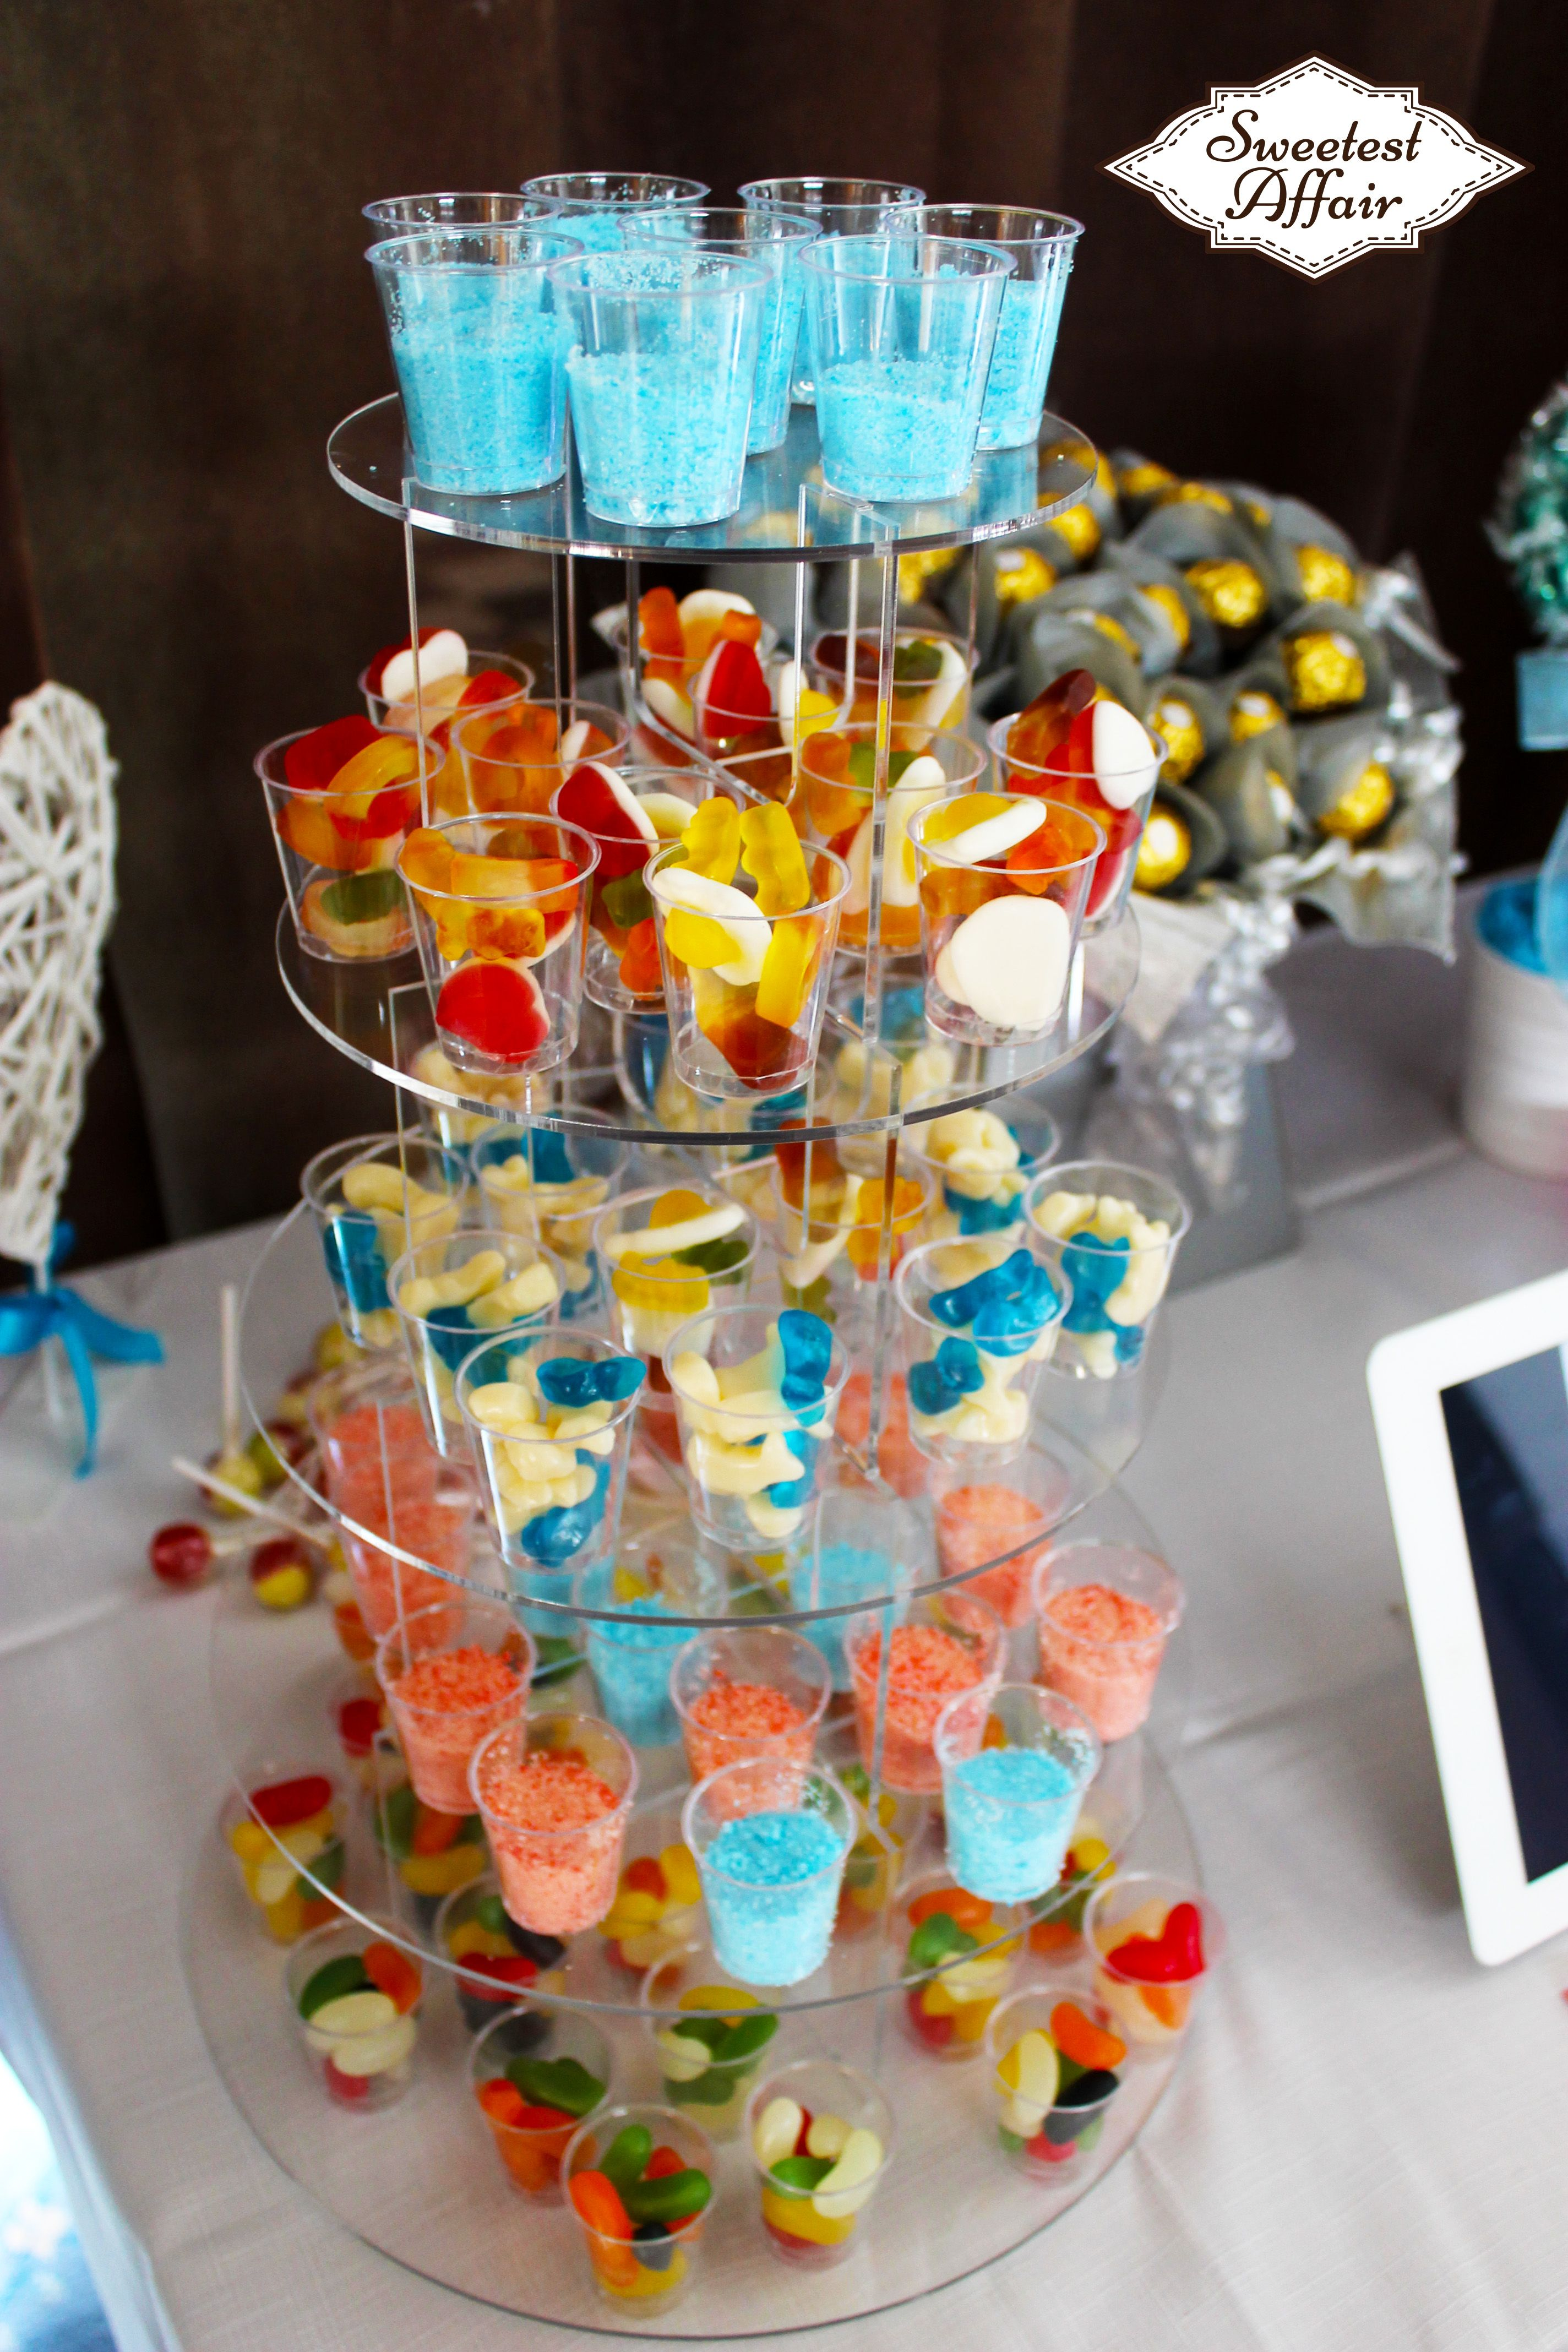 Our NEW Sweet Shot glass Tower! It's a great addition to